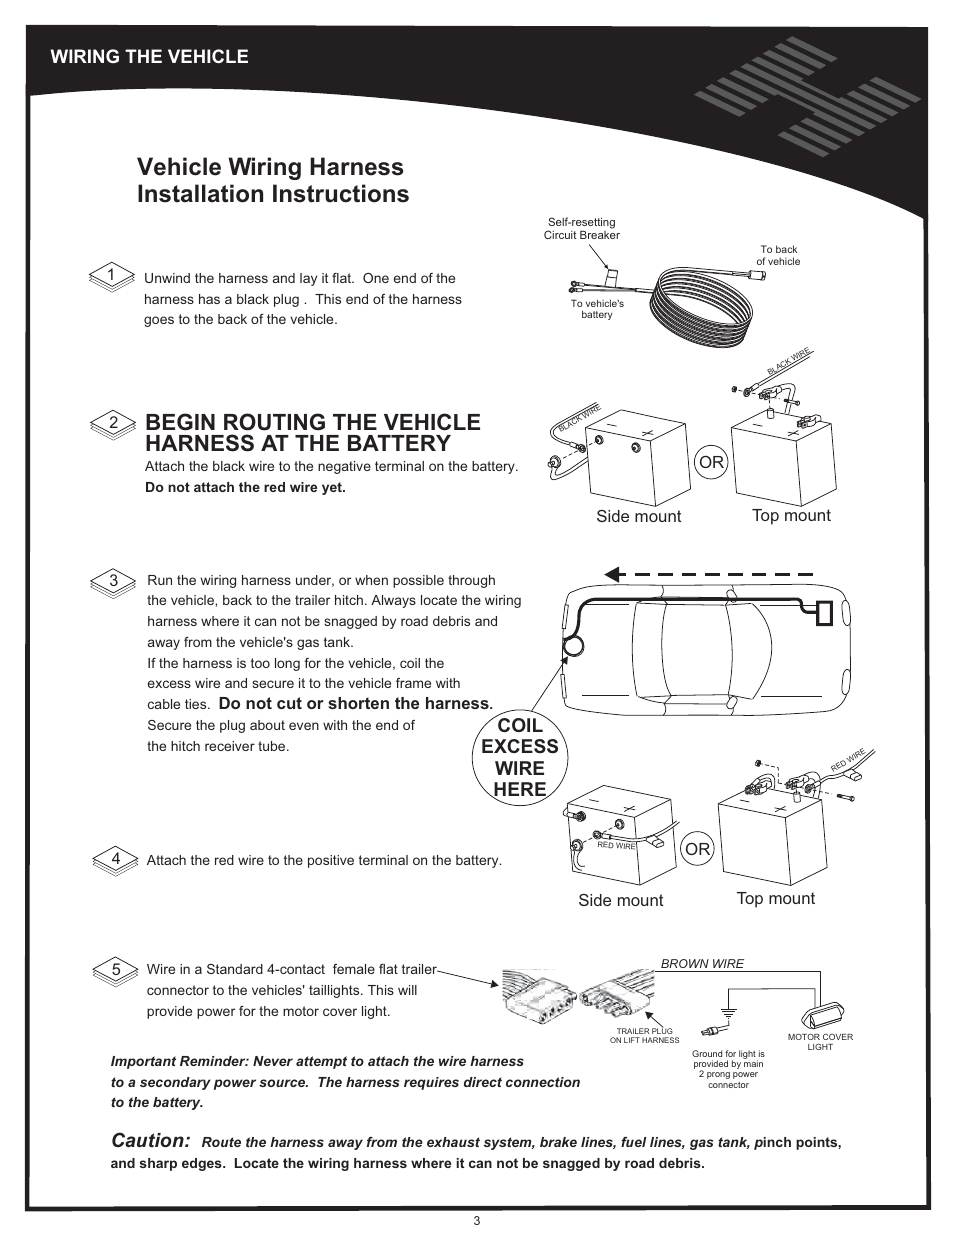 Wiring the vehicle, Vehicle wiring harness installation instructions, Begin  routing the vehicle harness at the battery | Harmar Mobility AL500 User  Manual | Page 3 / 36Manuals Directory